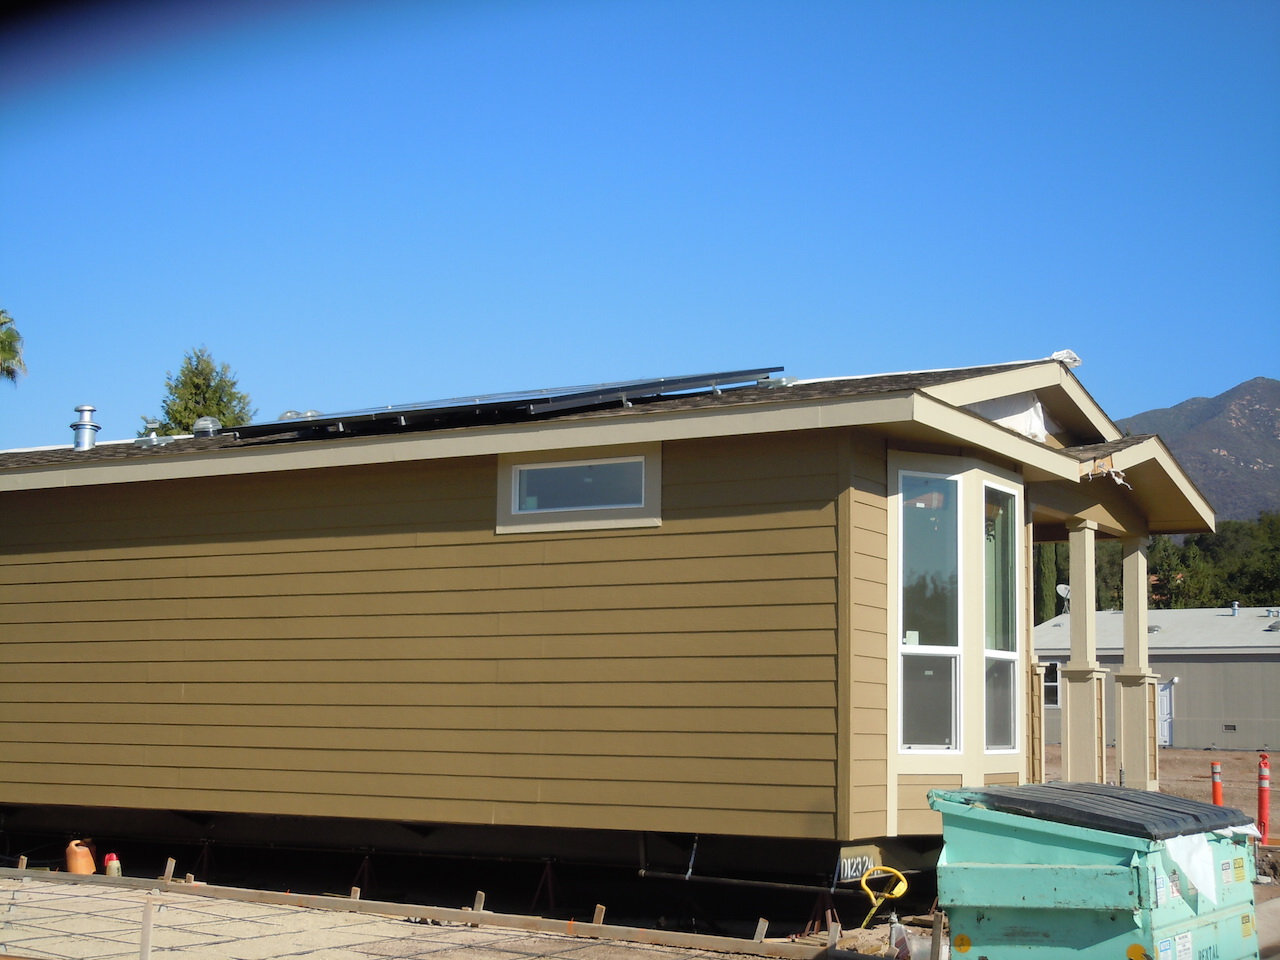 An ada aarp universally designed green solar powered home for Ada mobile homes